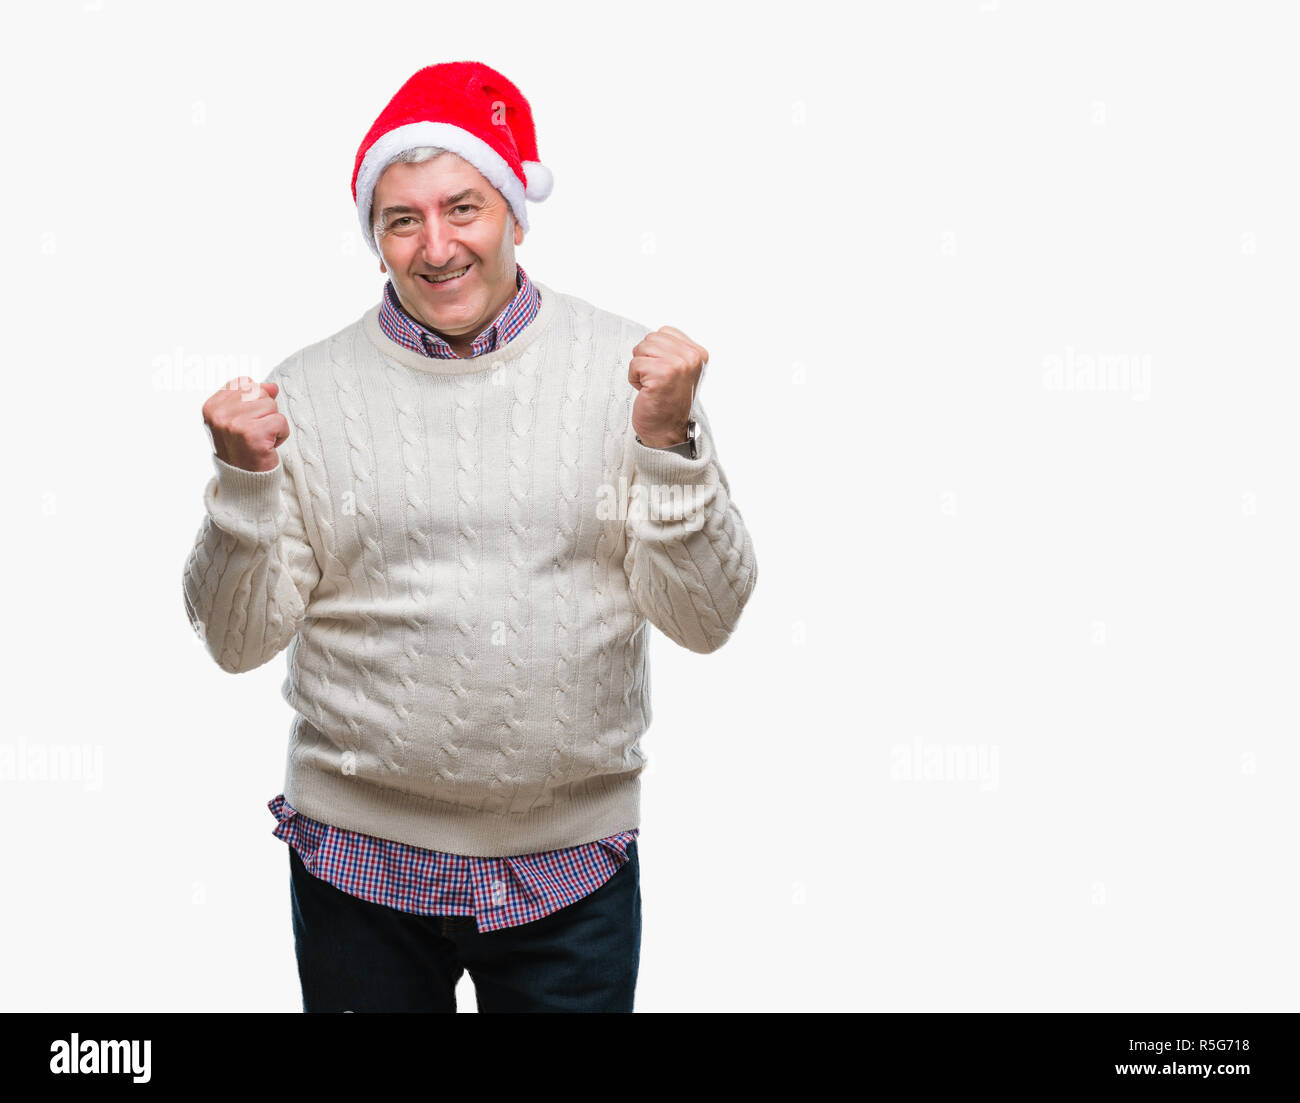 Handsome senior man wearing christmas hat over isolated background very happy and excited doing winner gesture with arms raised, smiling and screaming - Stock Image